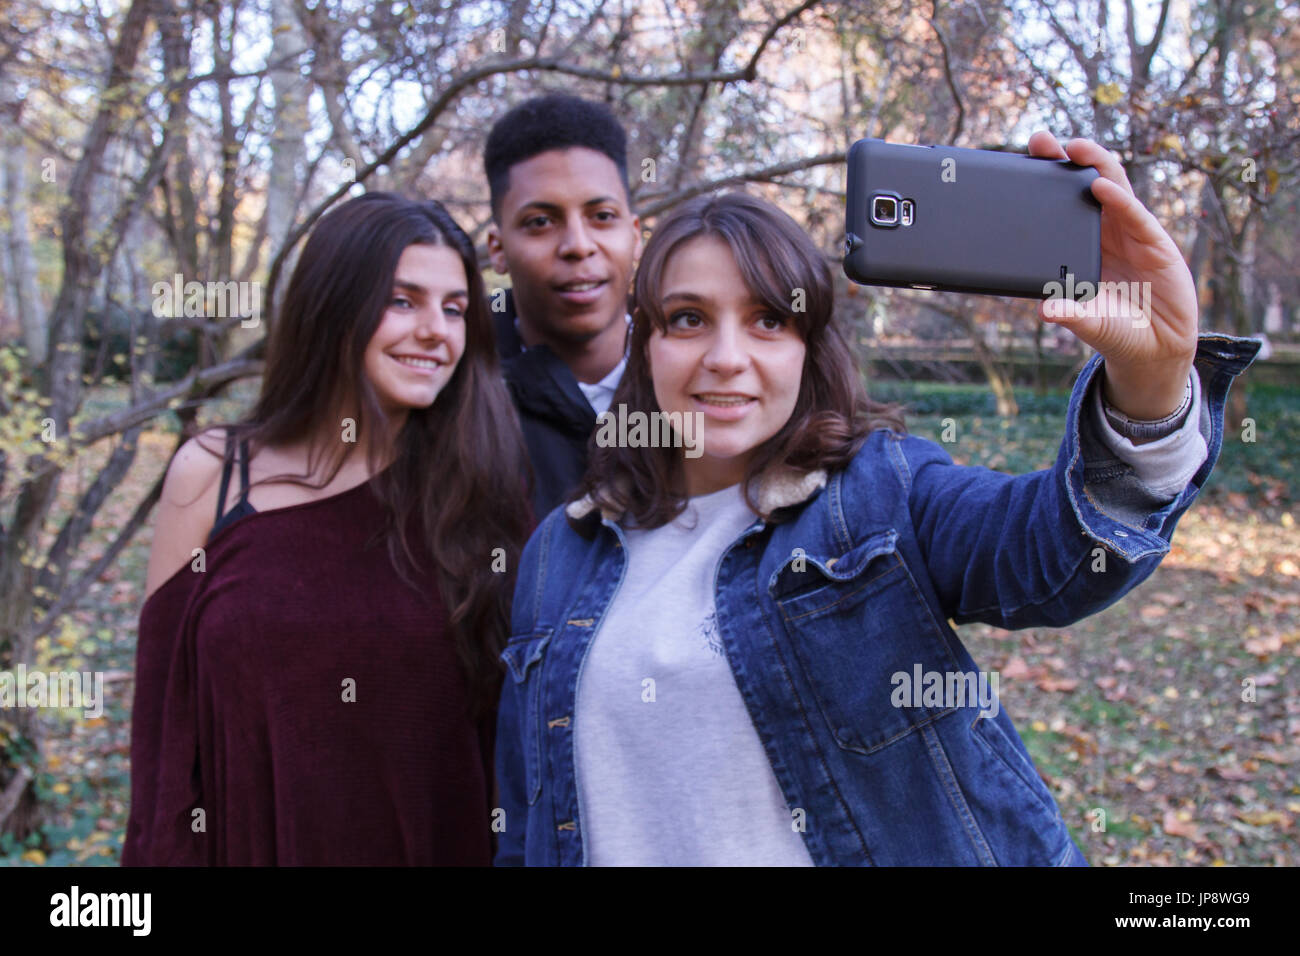 Of Girls And PeopleTwo Boy Young Caucasian Group Doing Black A PTkOuZXi